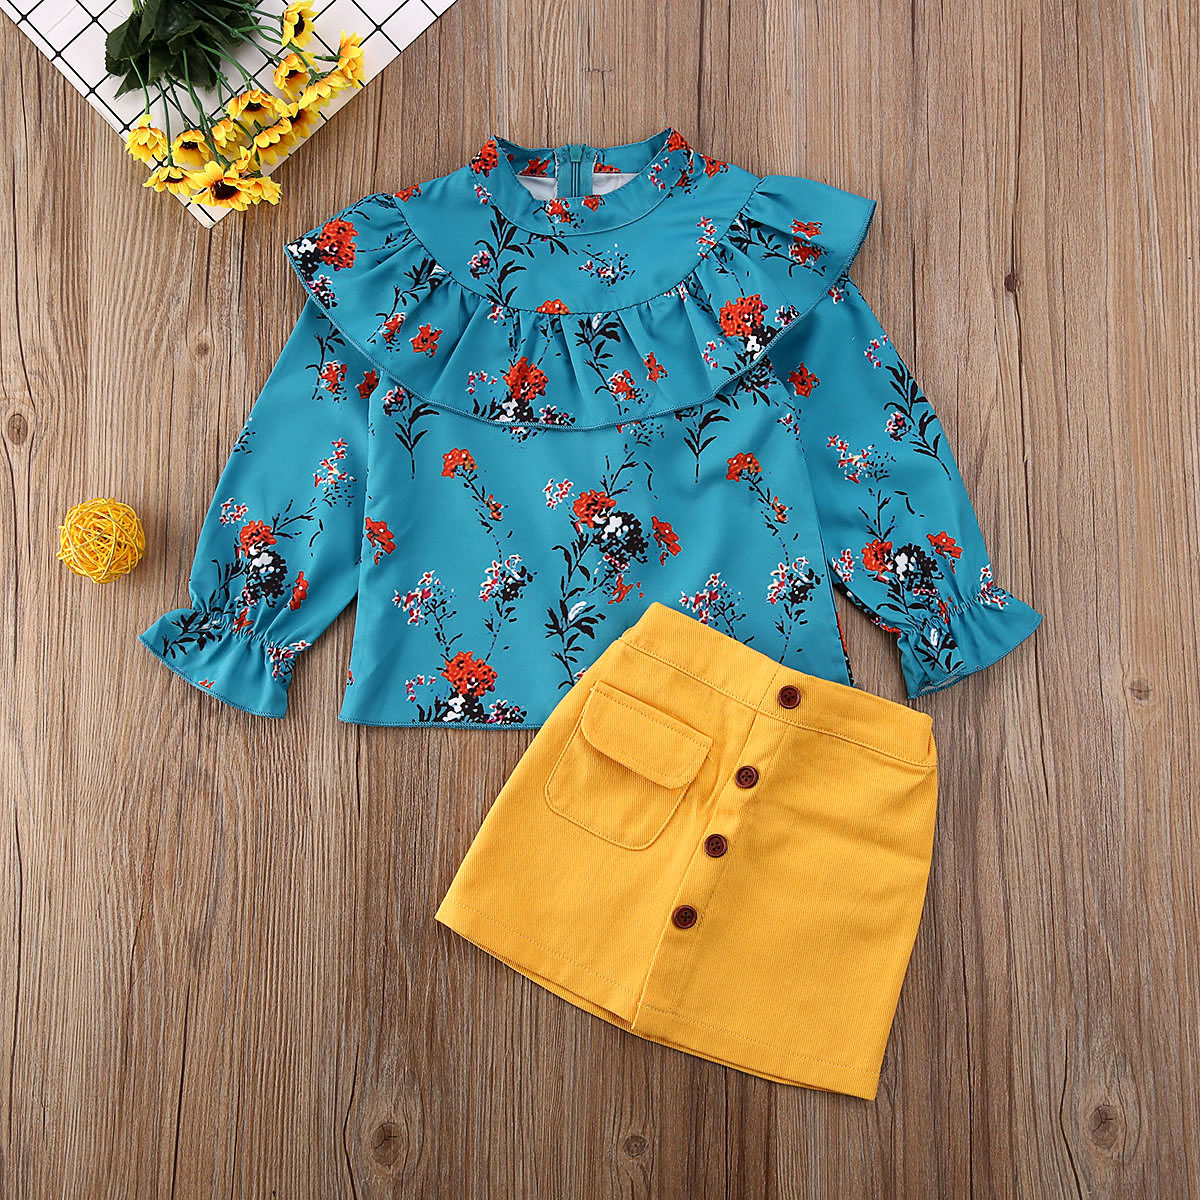 Pudcoco Toddler Baby Girl Clothes Flower Print Ruffle Long Sleeve Tops Solid Color Button Mini Skirt 2Pcs Outfits Clothes